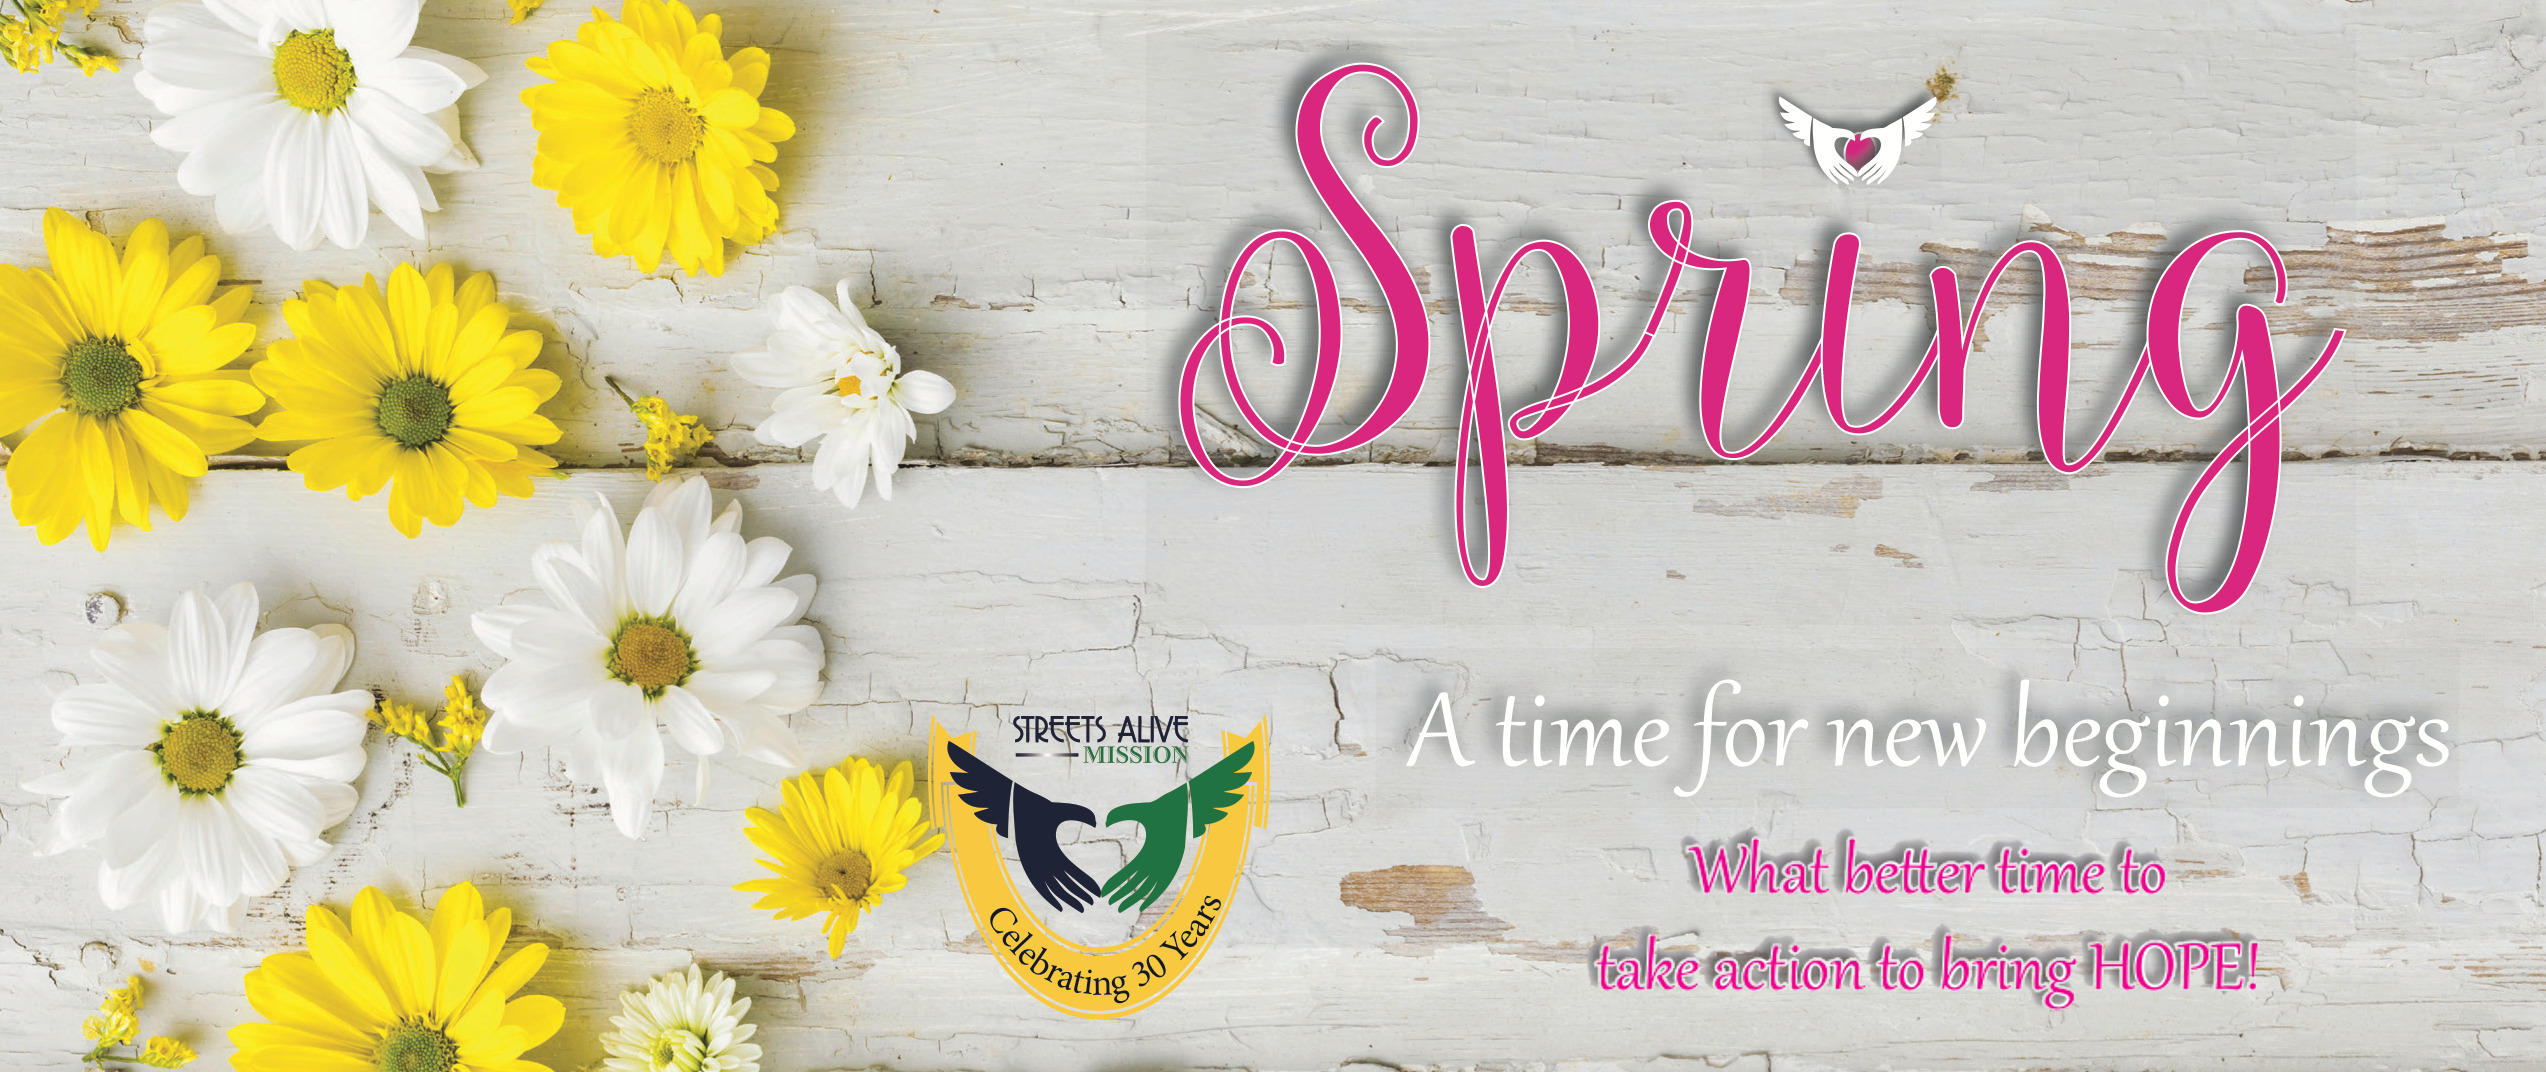 Spring - A time for new beginnings. What better time to take action to bring HOPE!